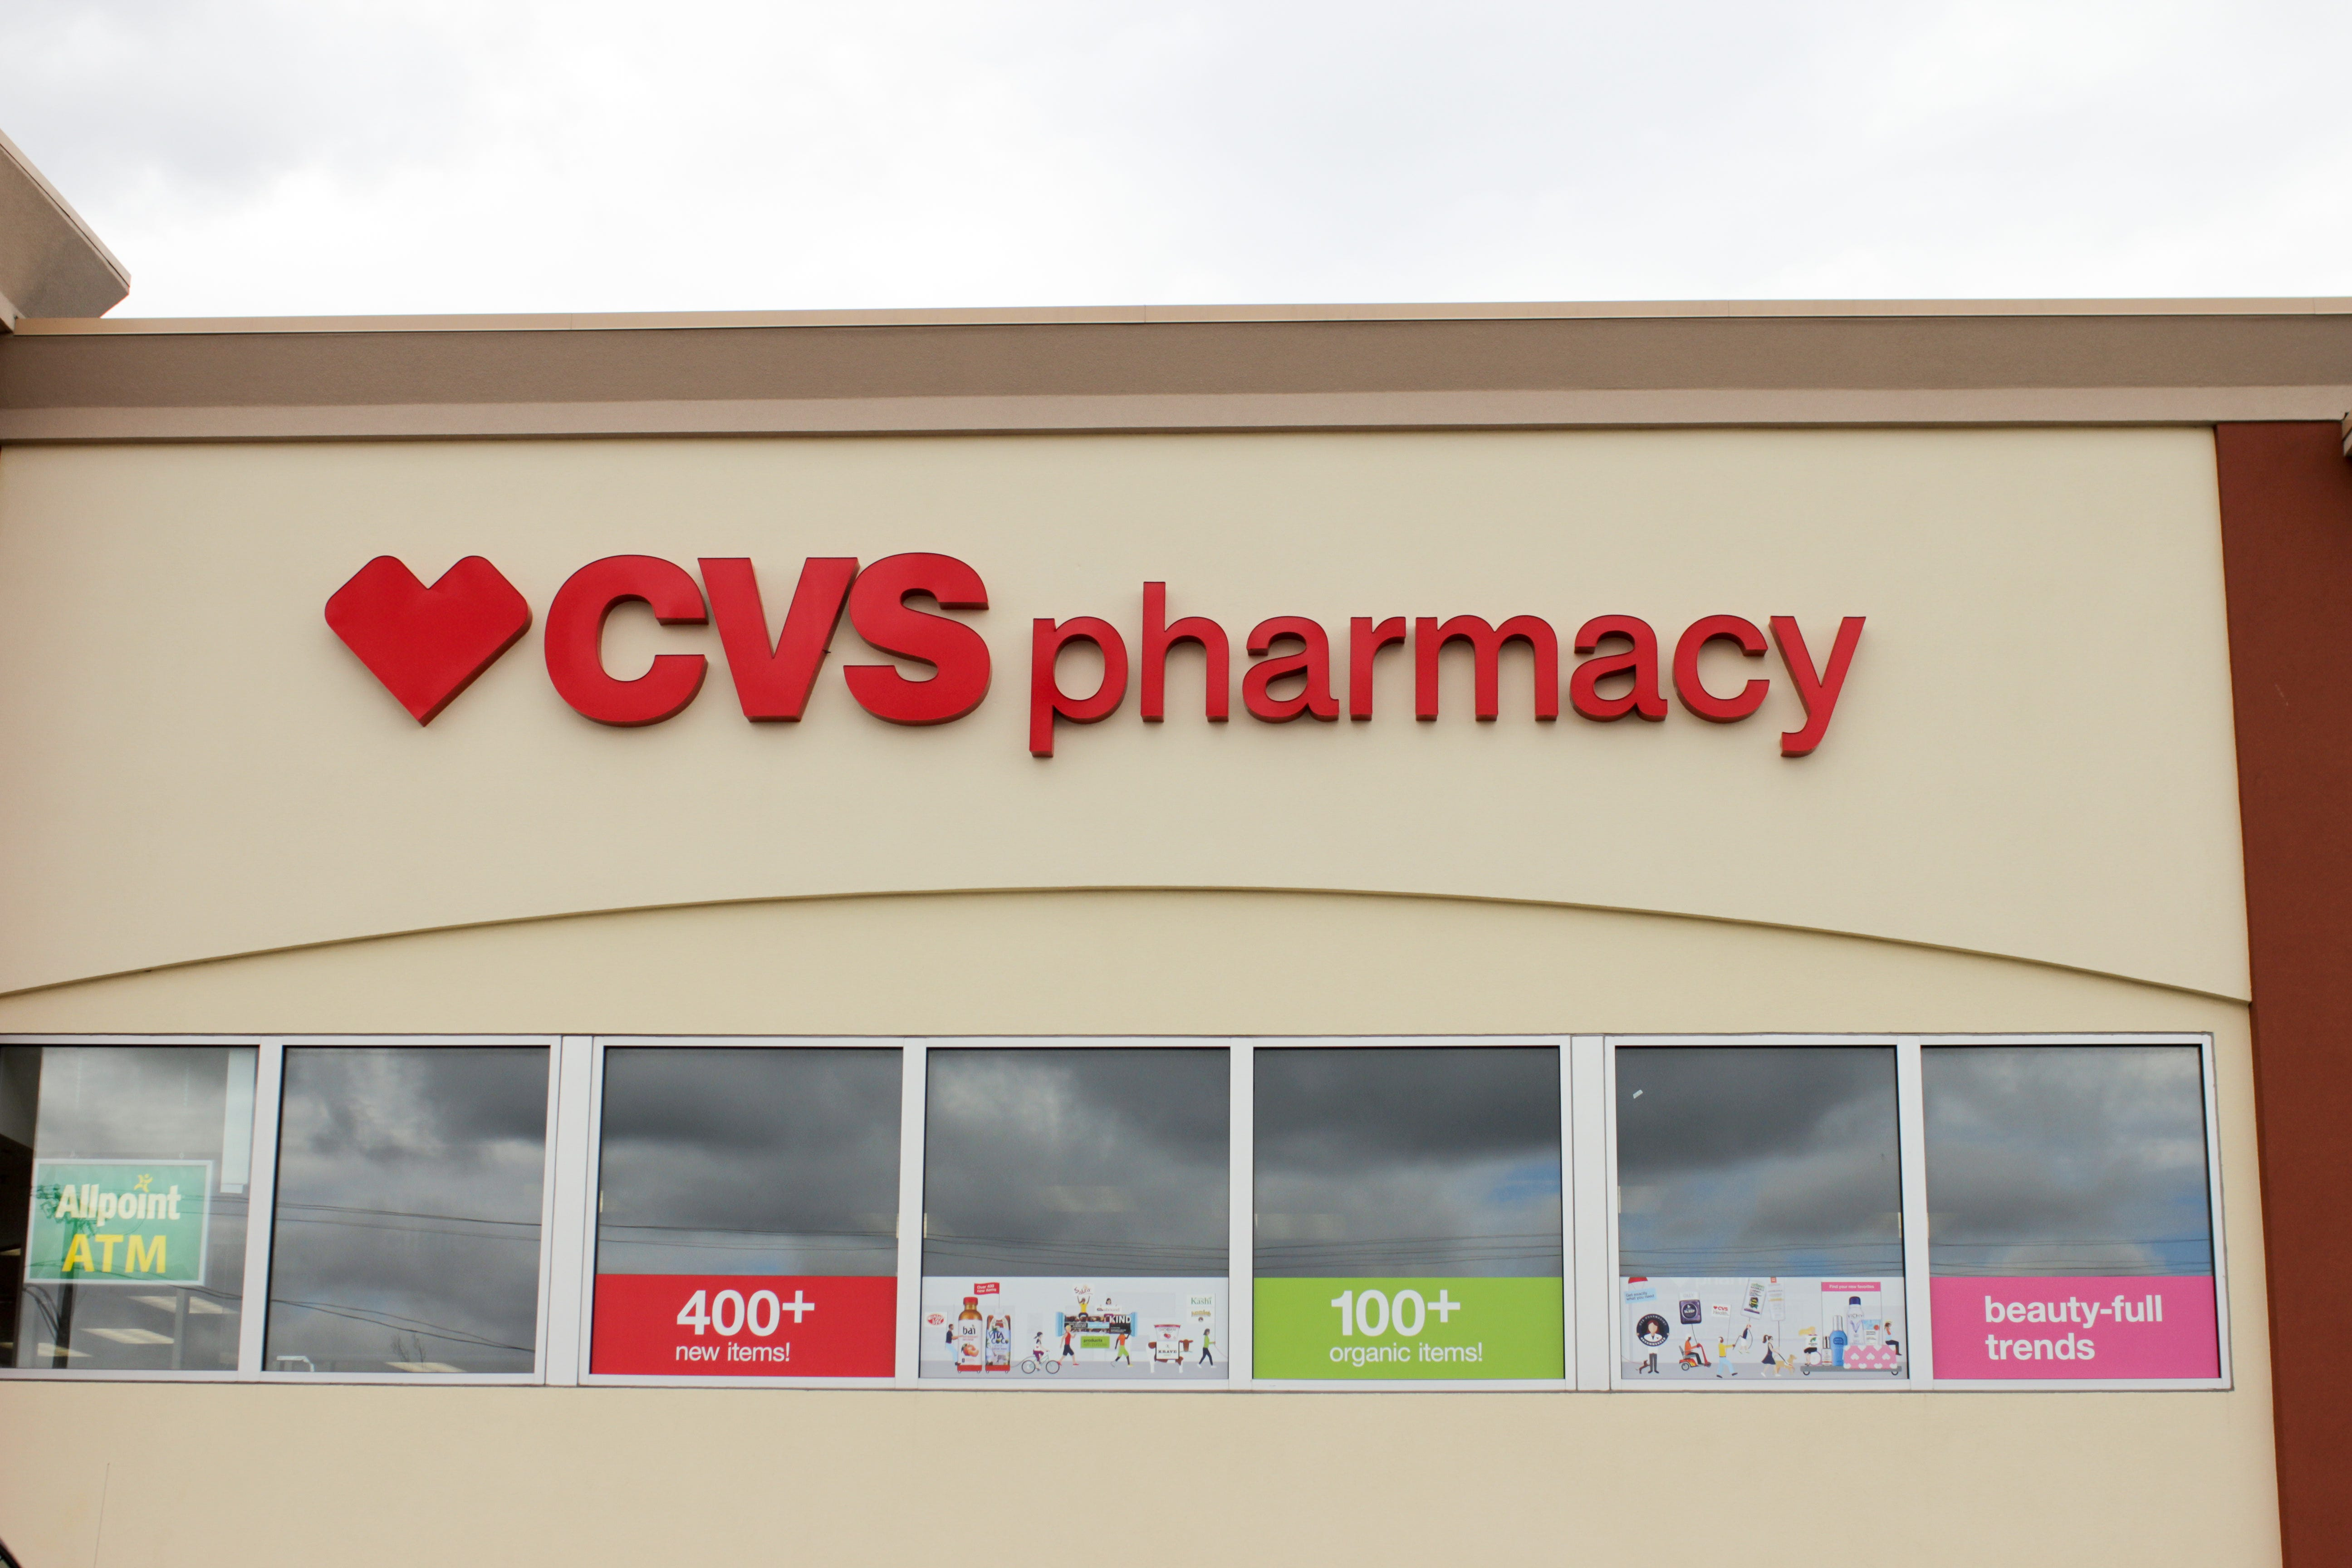 Some CVS stores selling topical products infused with cannabis extract CBD but not edibles